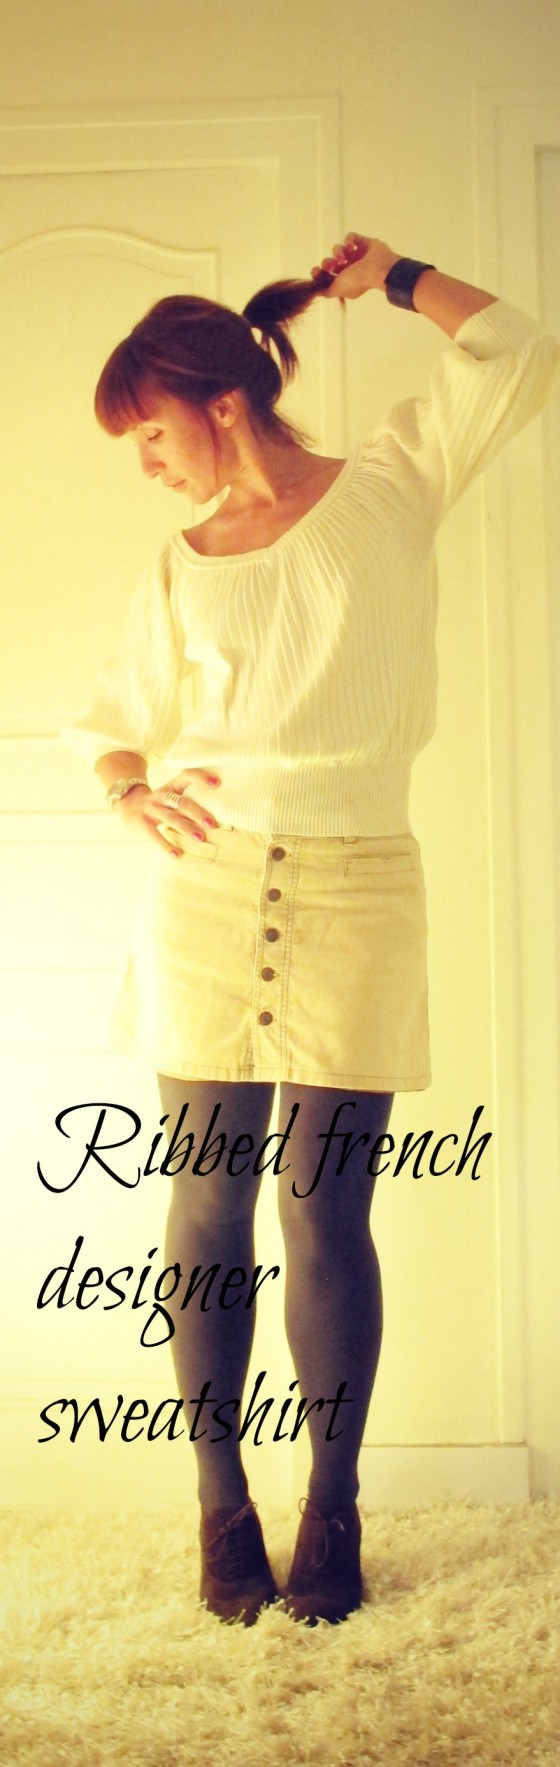 Ribbed French Designer Sweatshirt